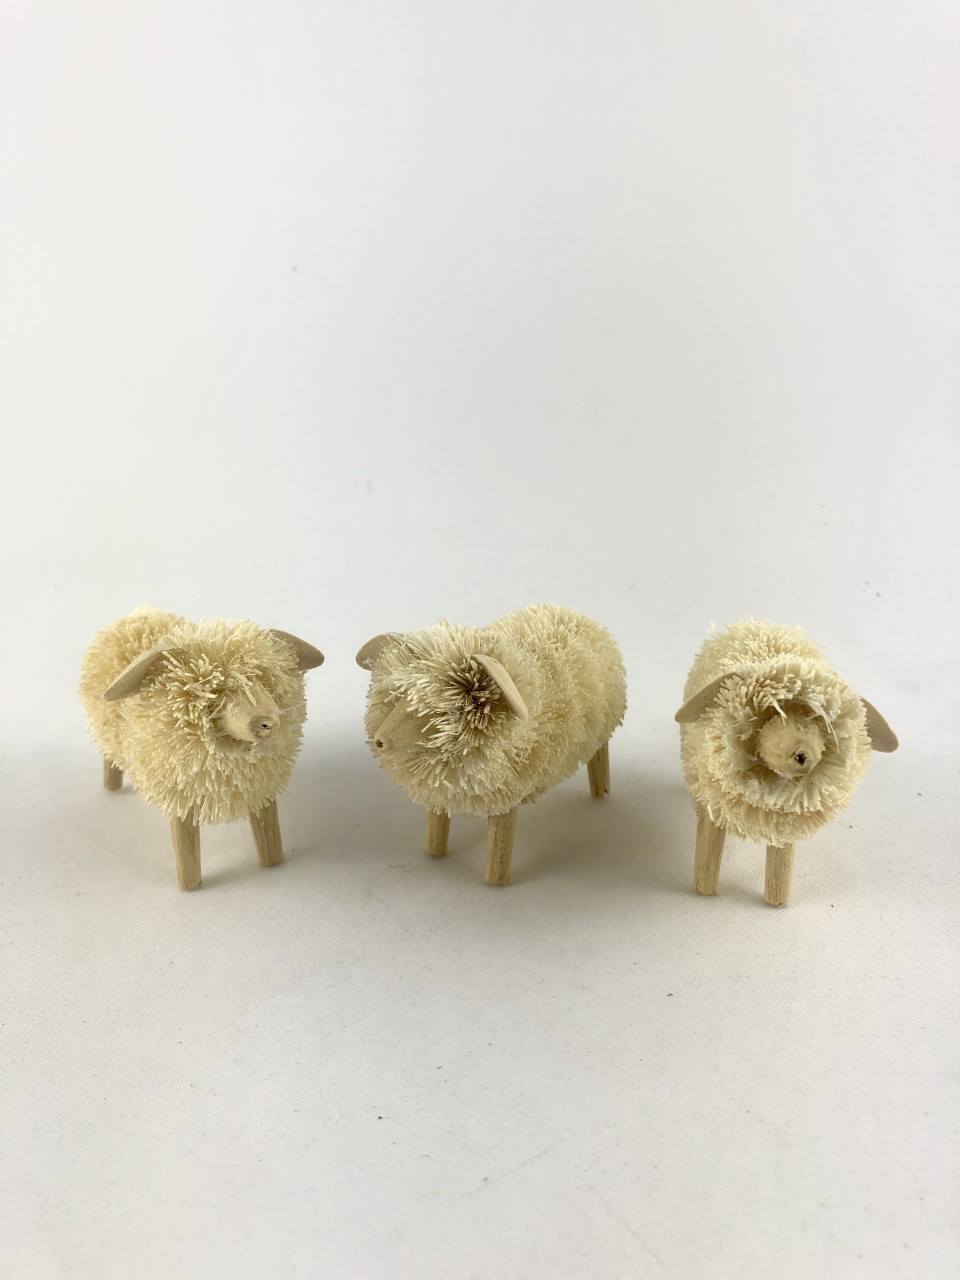 Beautifully Handcrafted, Handmade and all Natural Aussie Sheep. (set of 3) The cutest Sheep you will ever shear